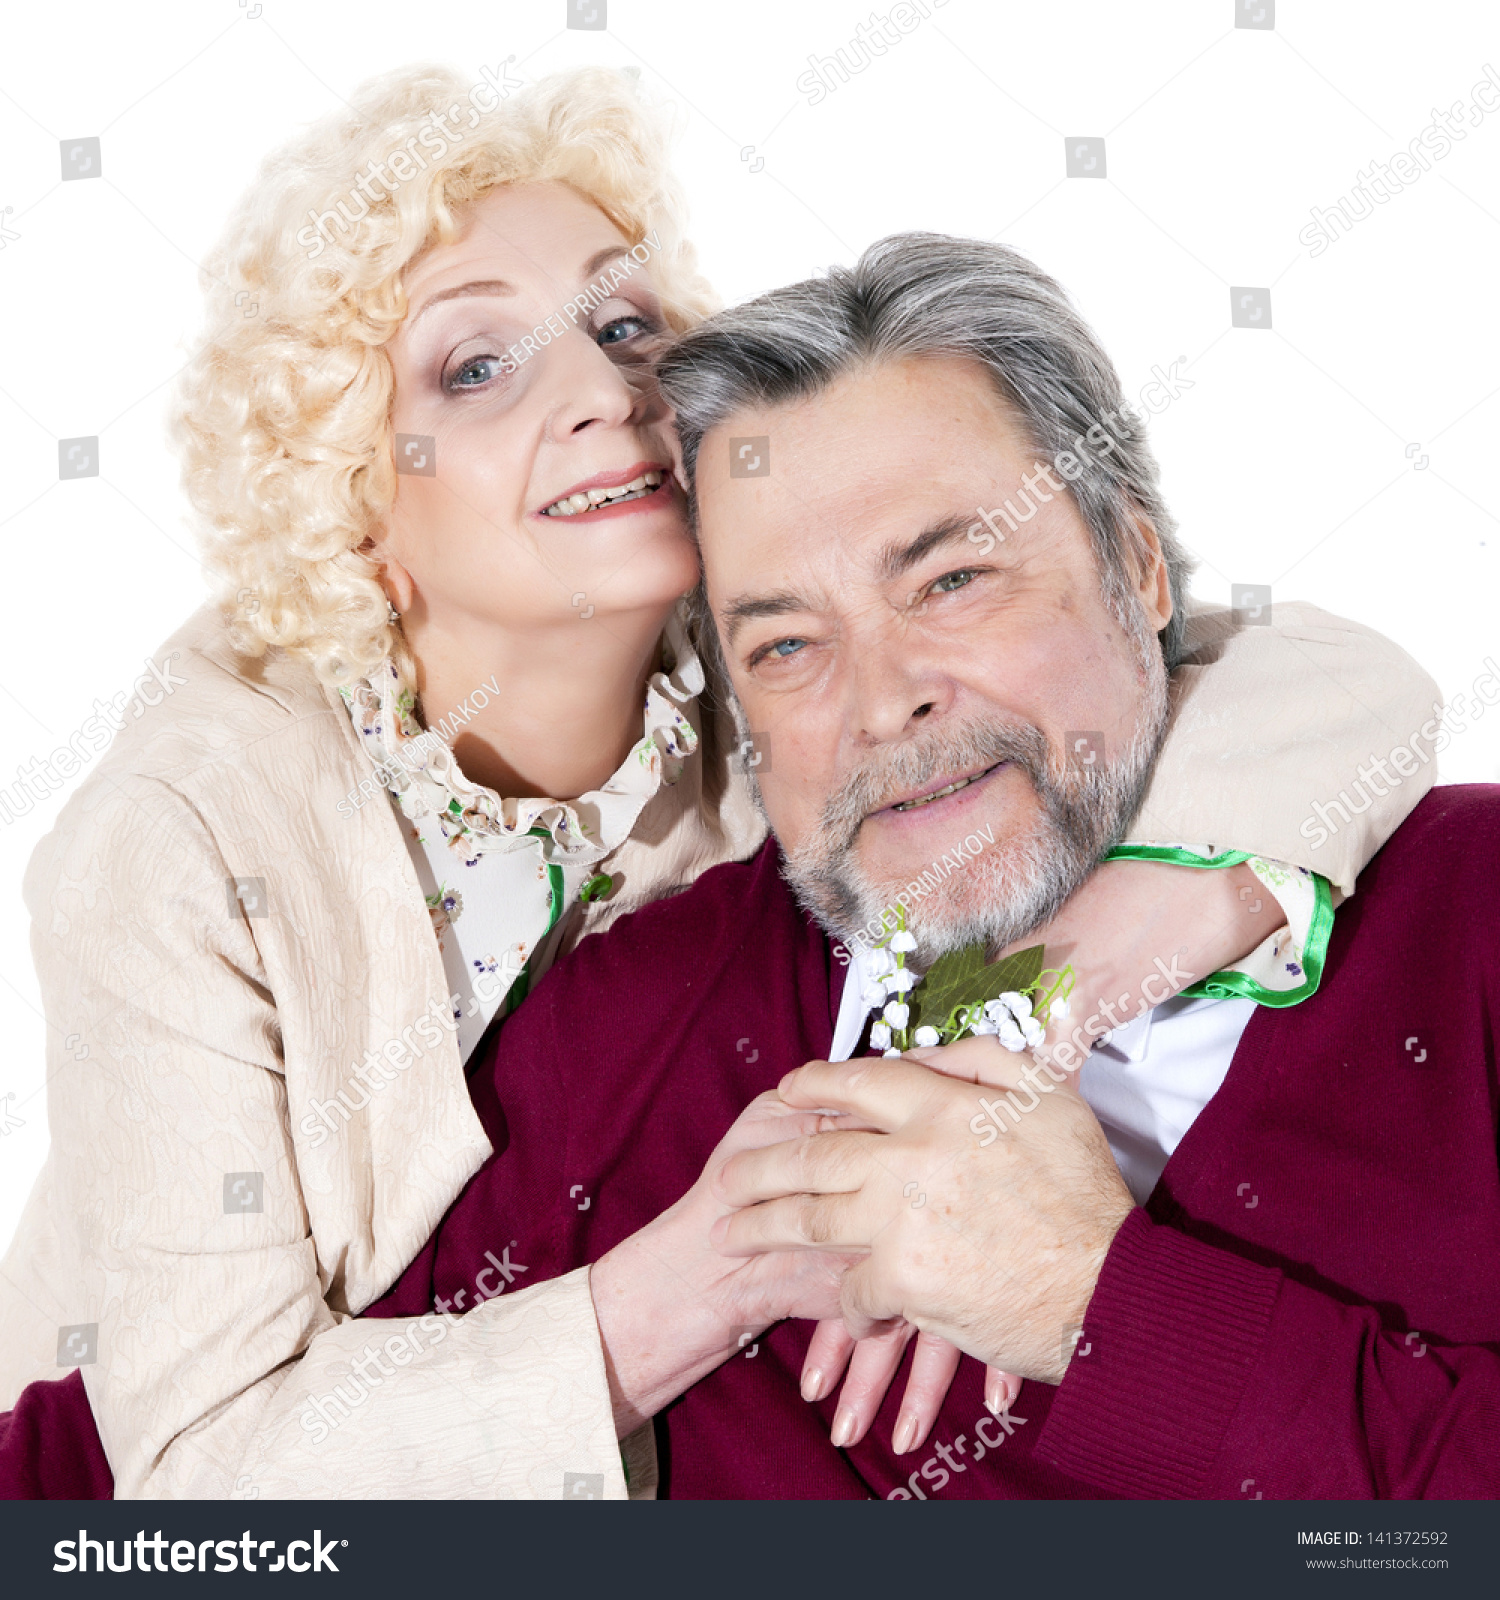 Image of: Love Cute Old People Shutterstock Cute Old People Stock Photo edit Now 141372592 Shutterstock